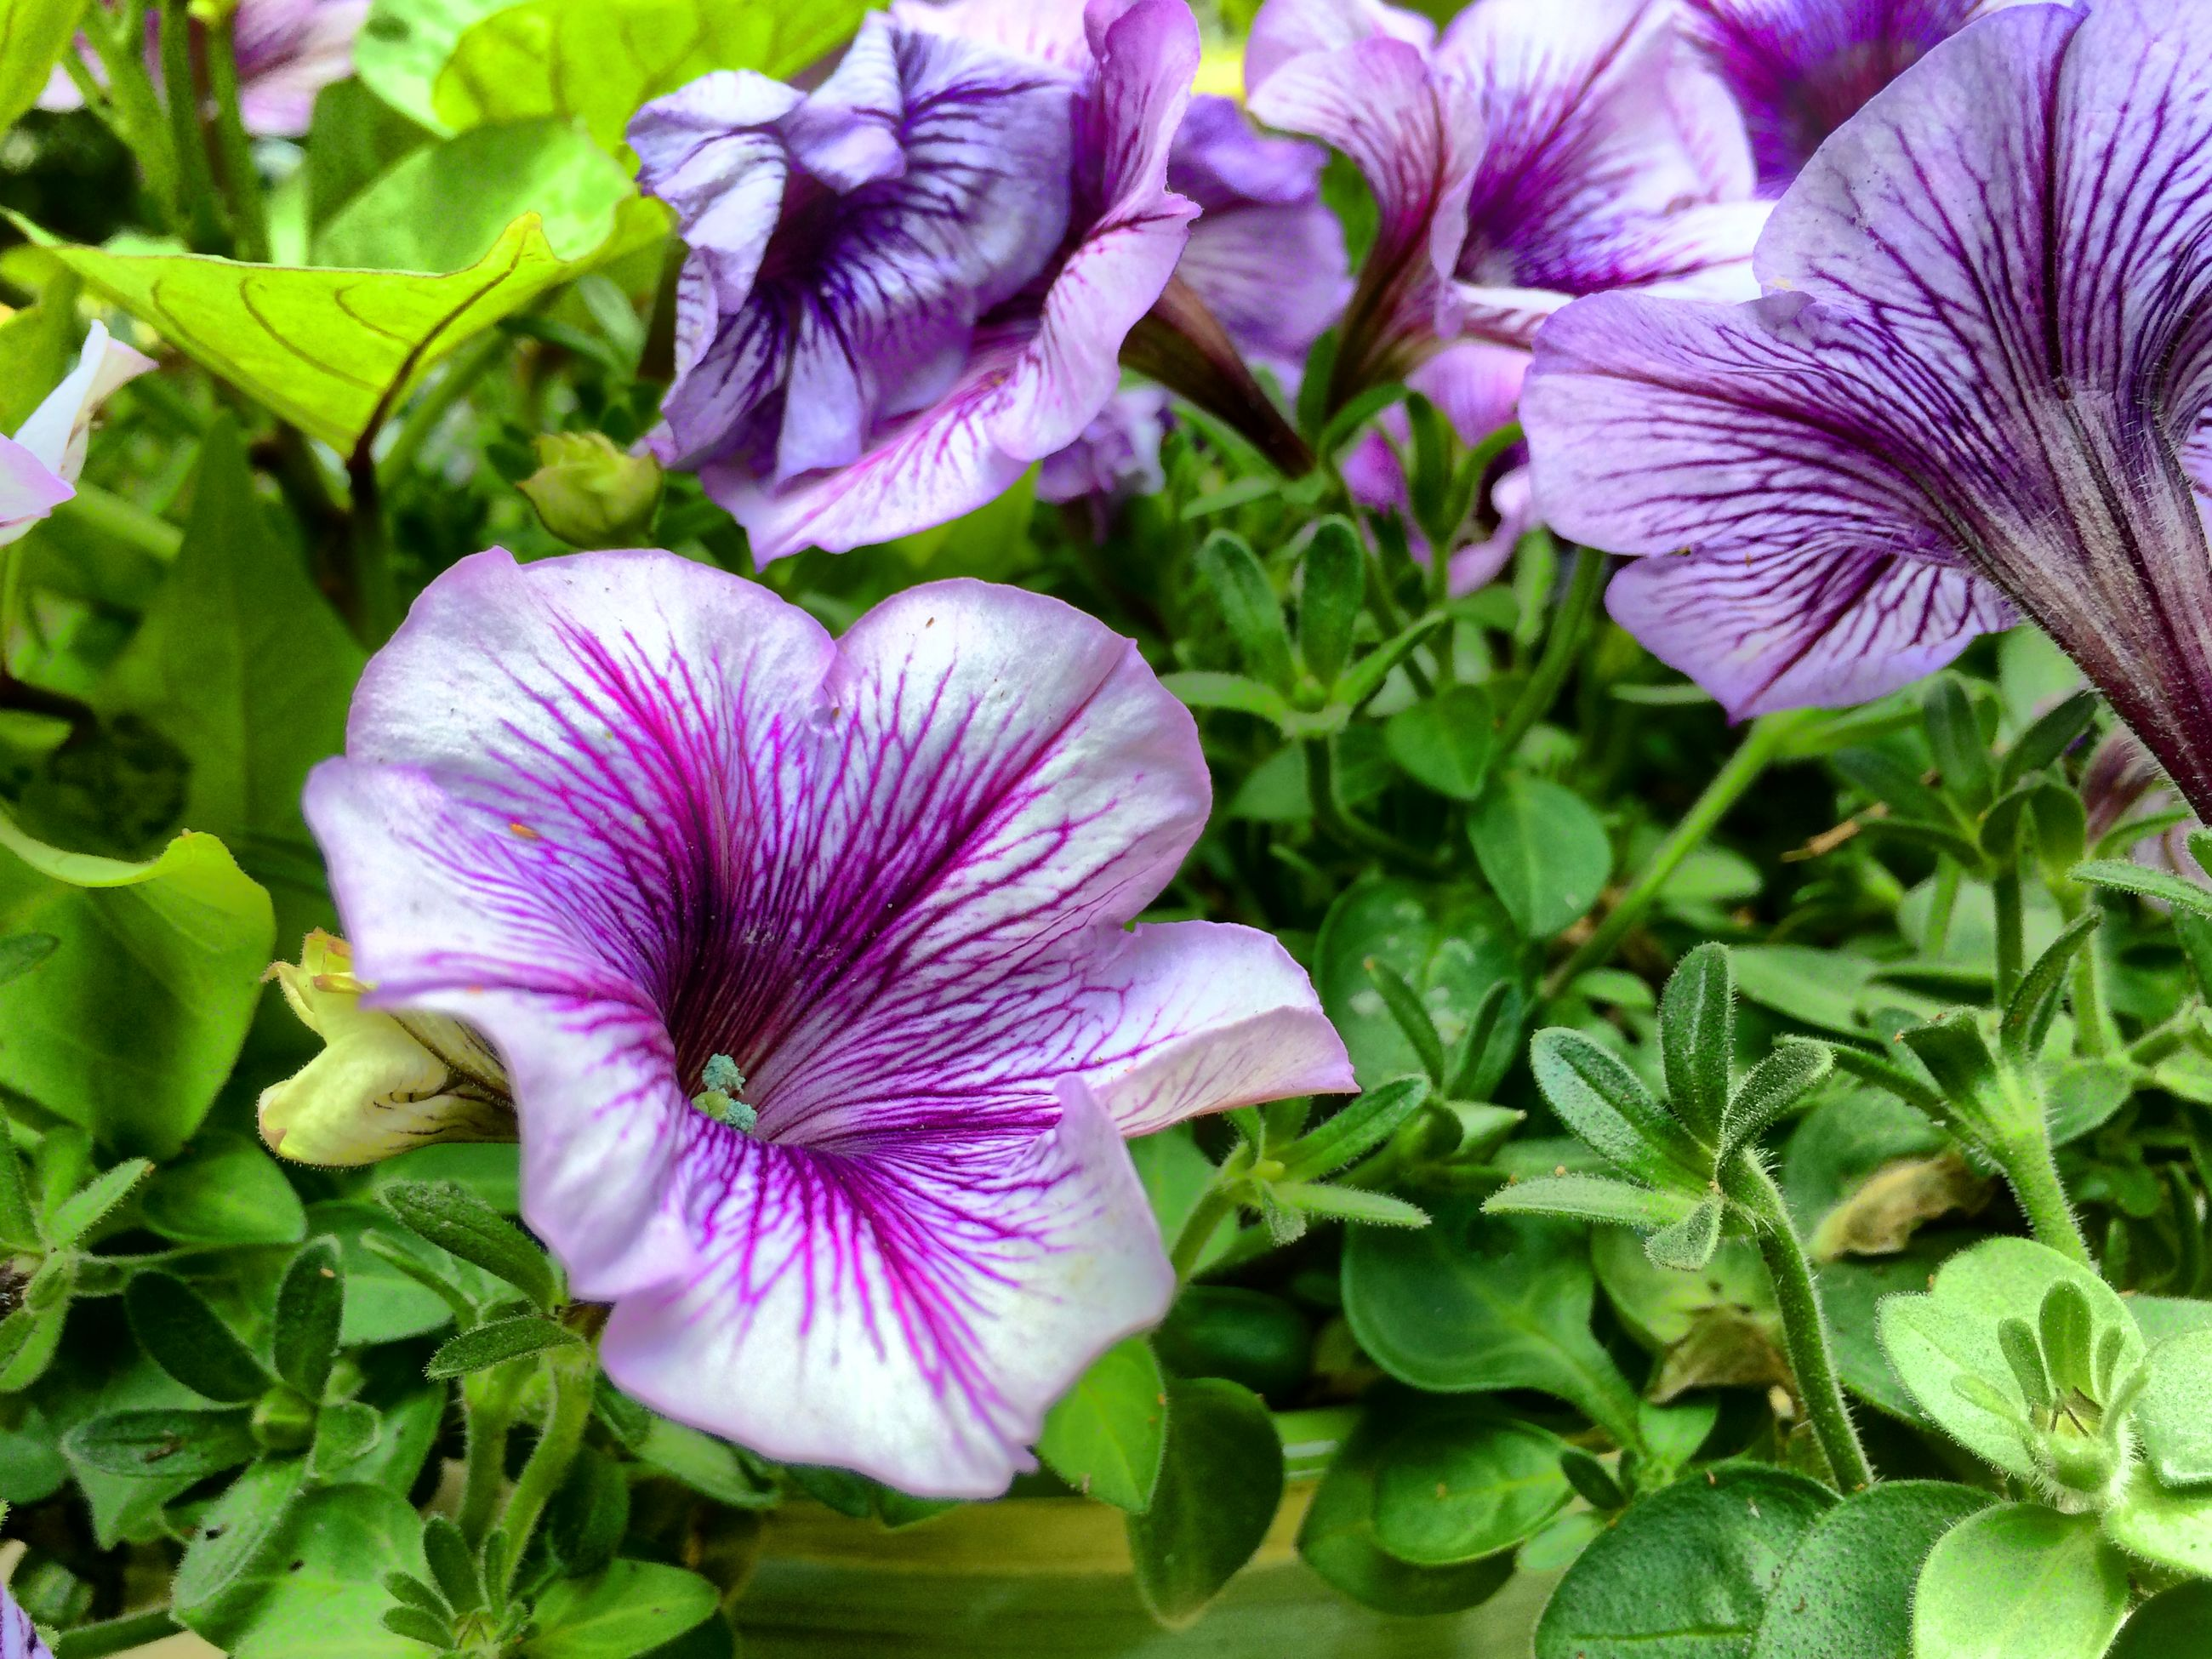 flower, freshness, purple, fragility, petal, growth, flower head, beauty in nature, leaf, blooming, plant, nature, close-up, in bloom, green color, park - man made space, blossom, focus on foreground, no people, pollen